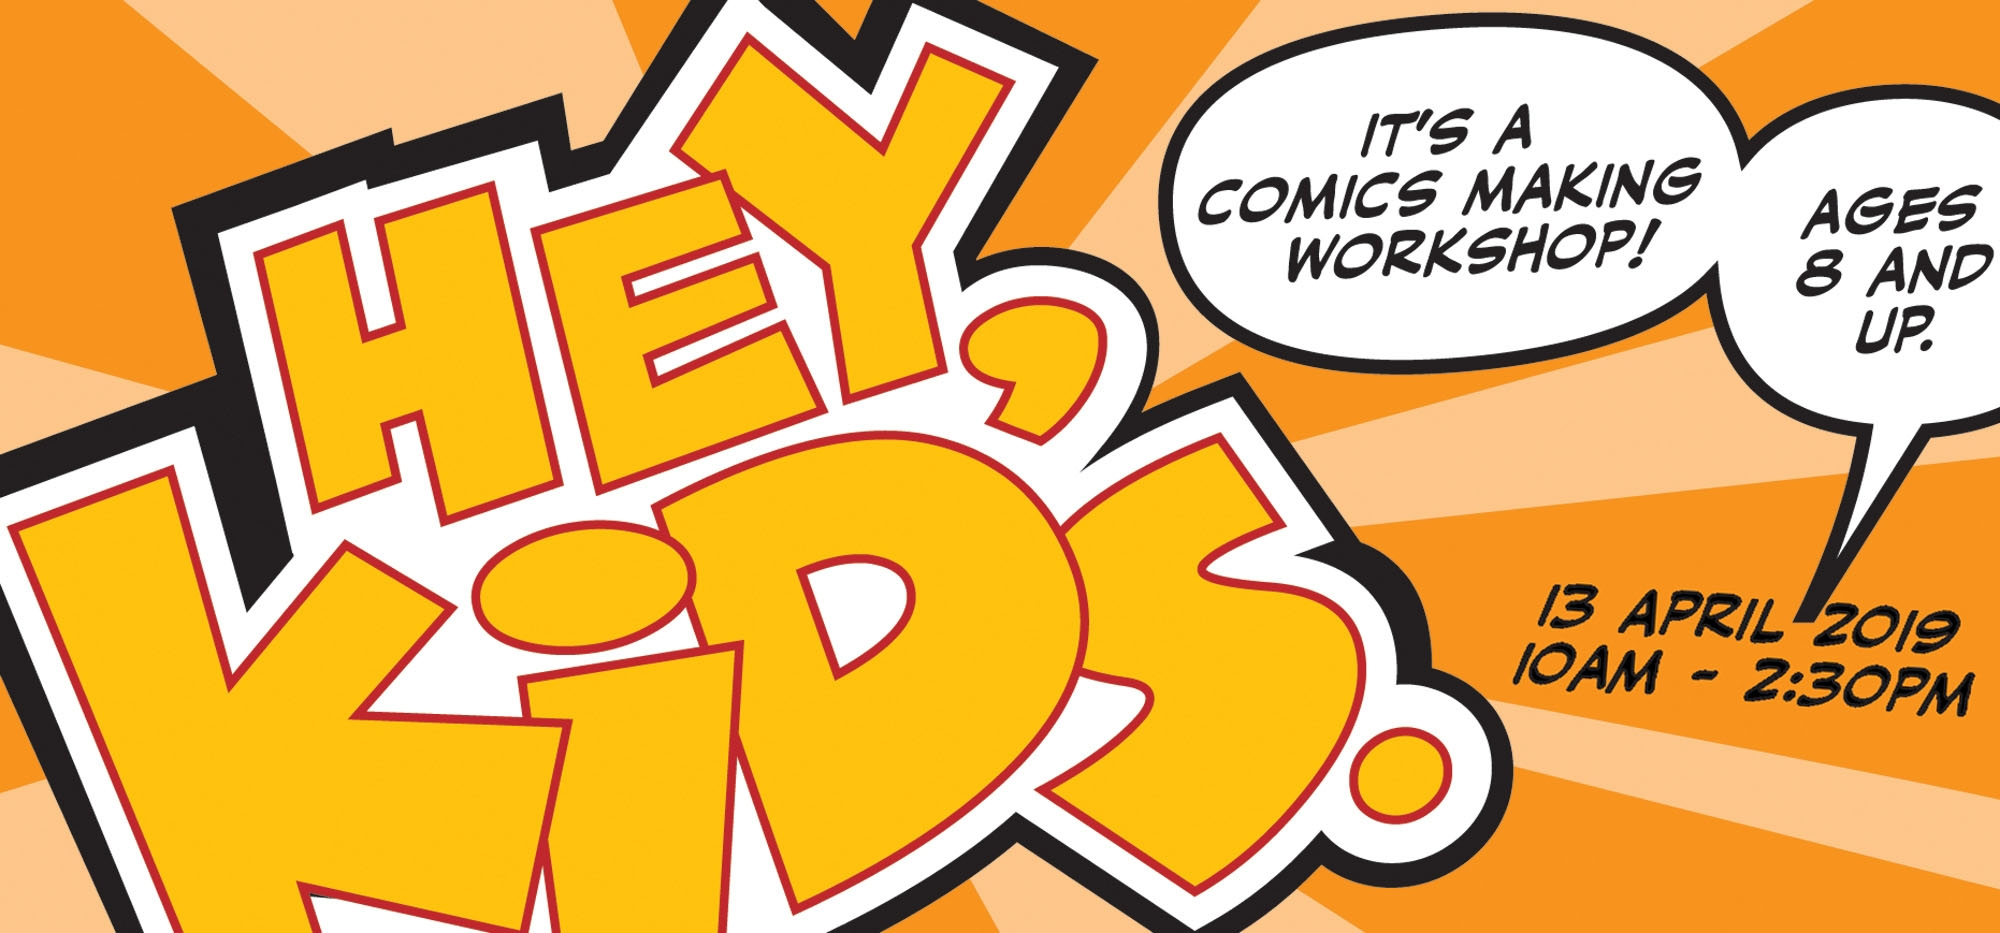 Comic Workshop for kids at Happy Mess Art